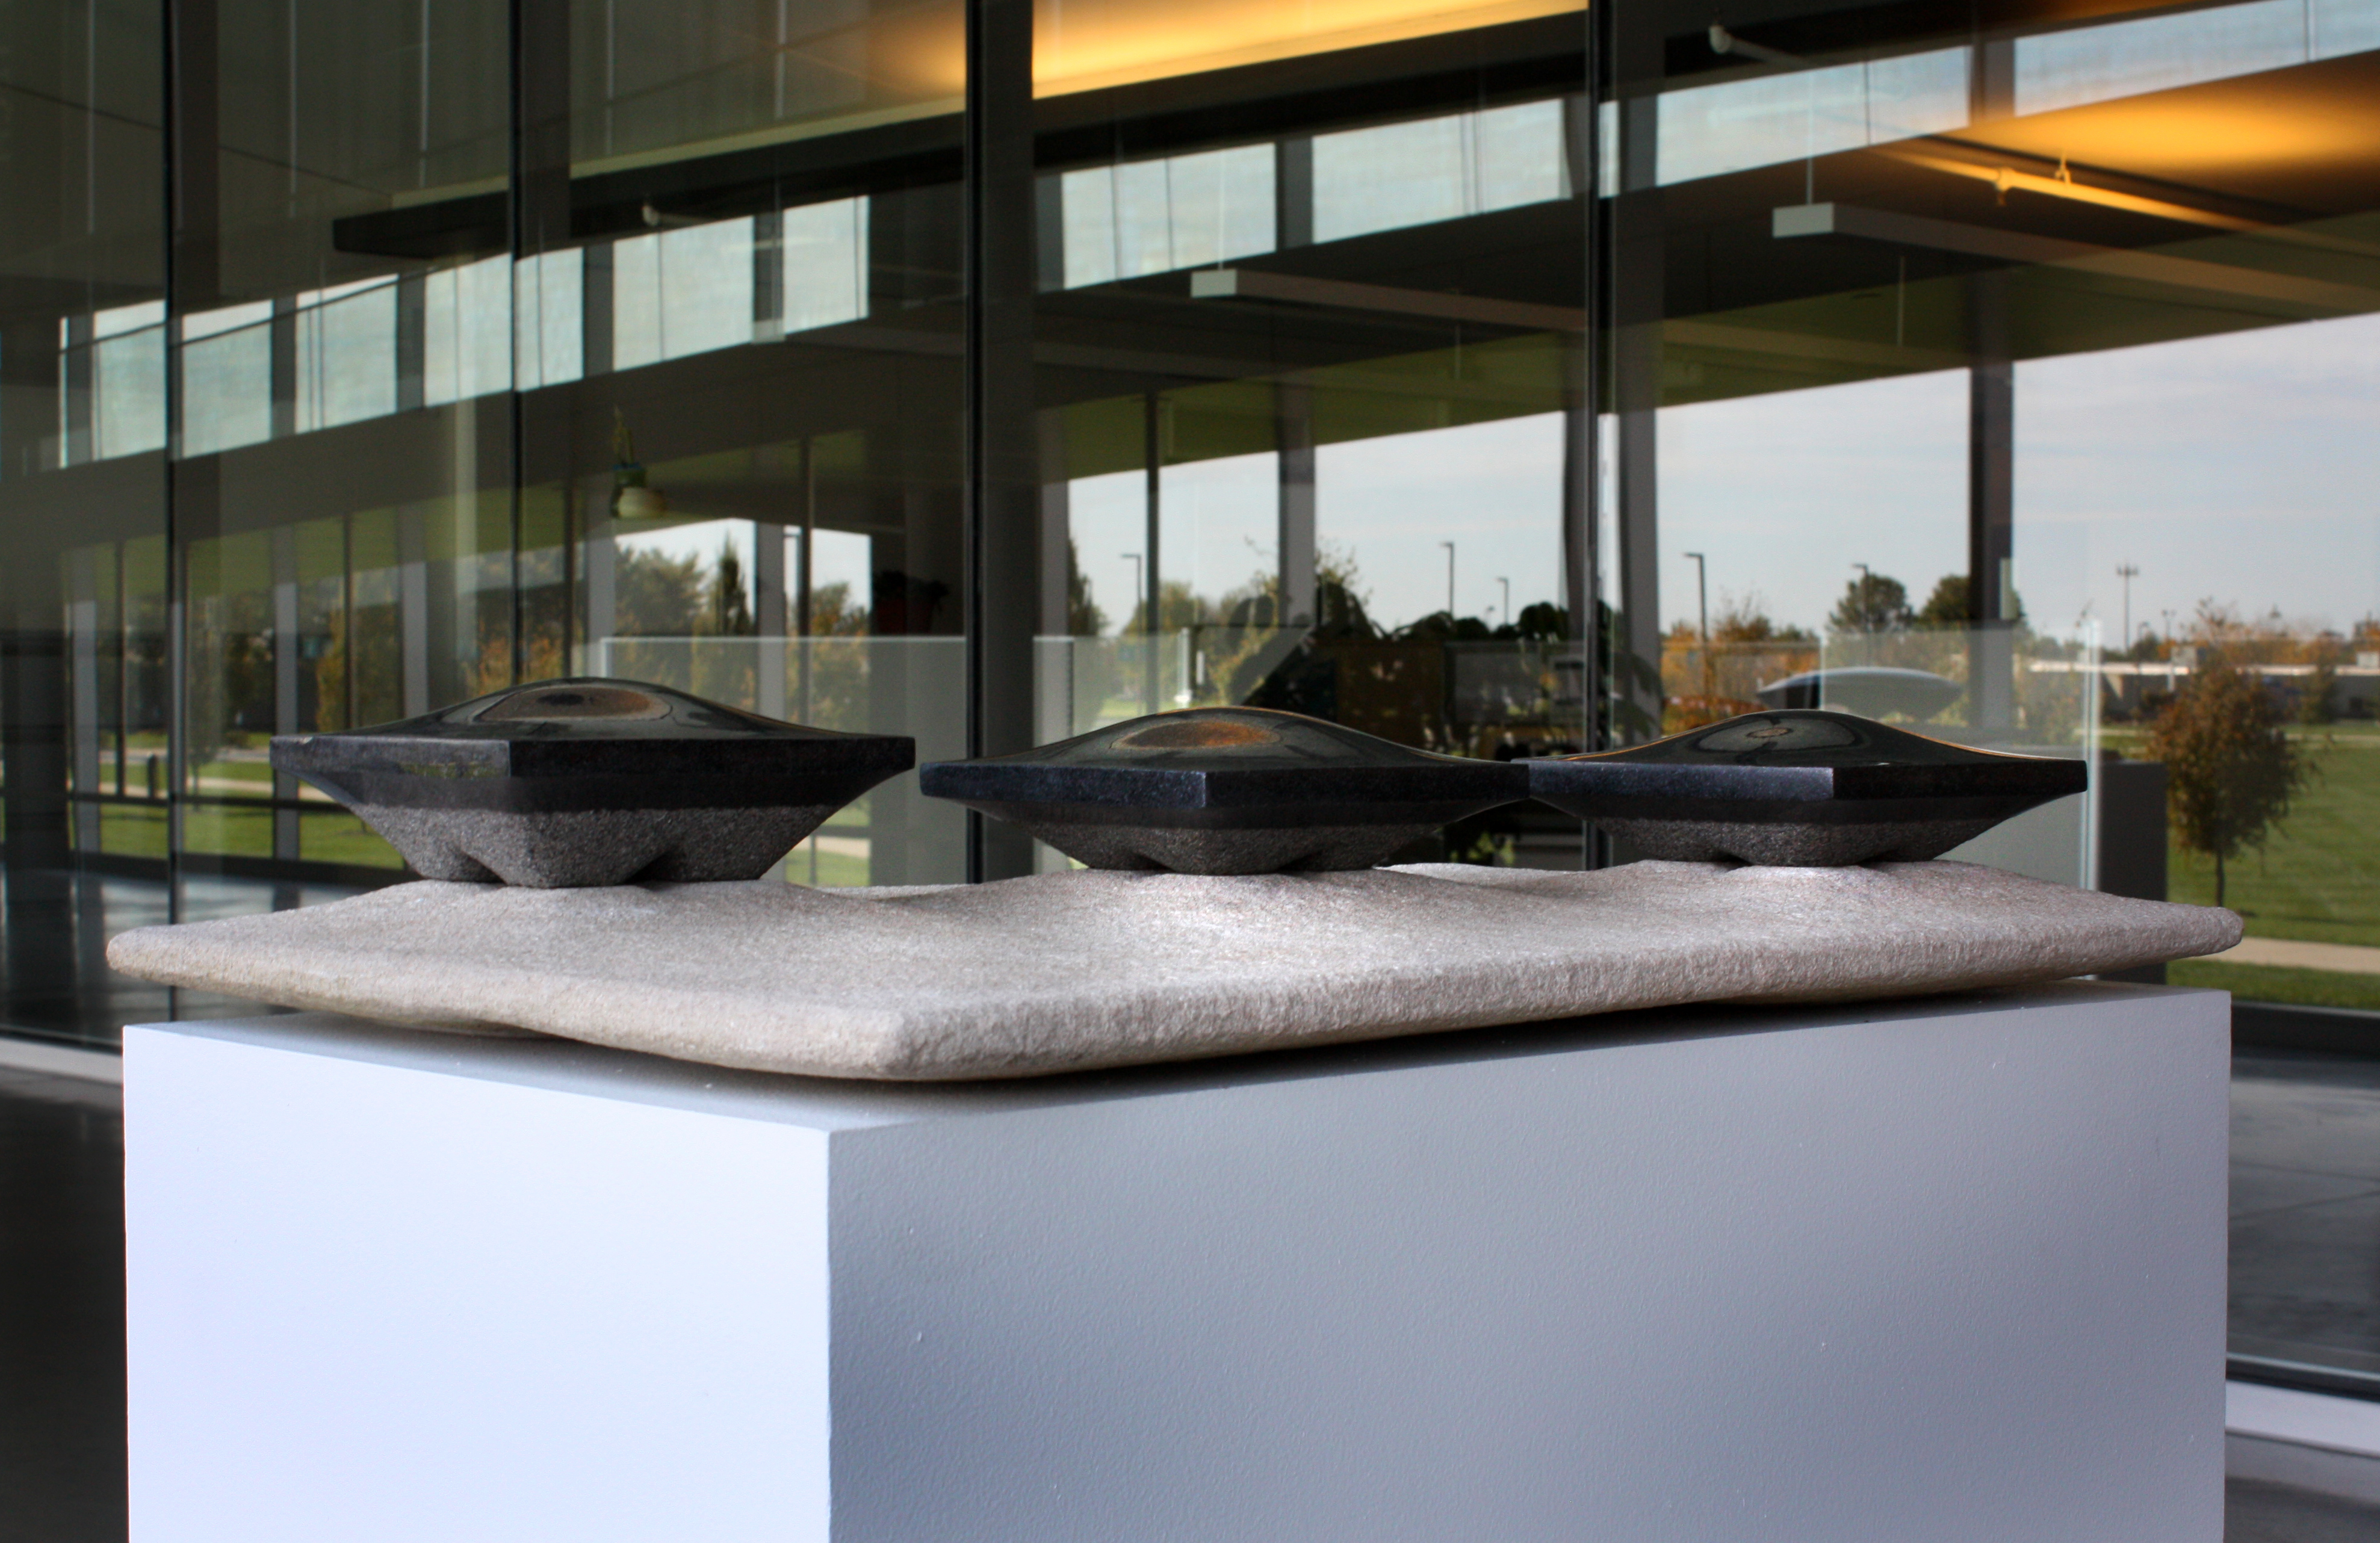 'Lunar Colony van der Rohe'  - 2012 - 17 x 28 x 7 inches - Granite on Indiana Limestone